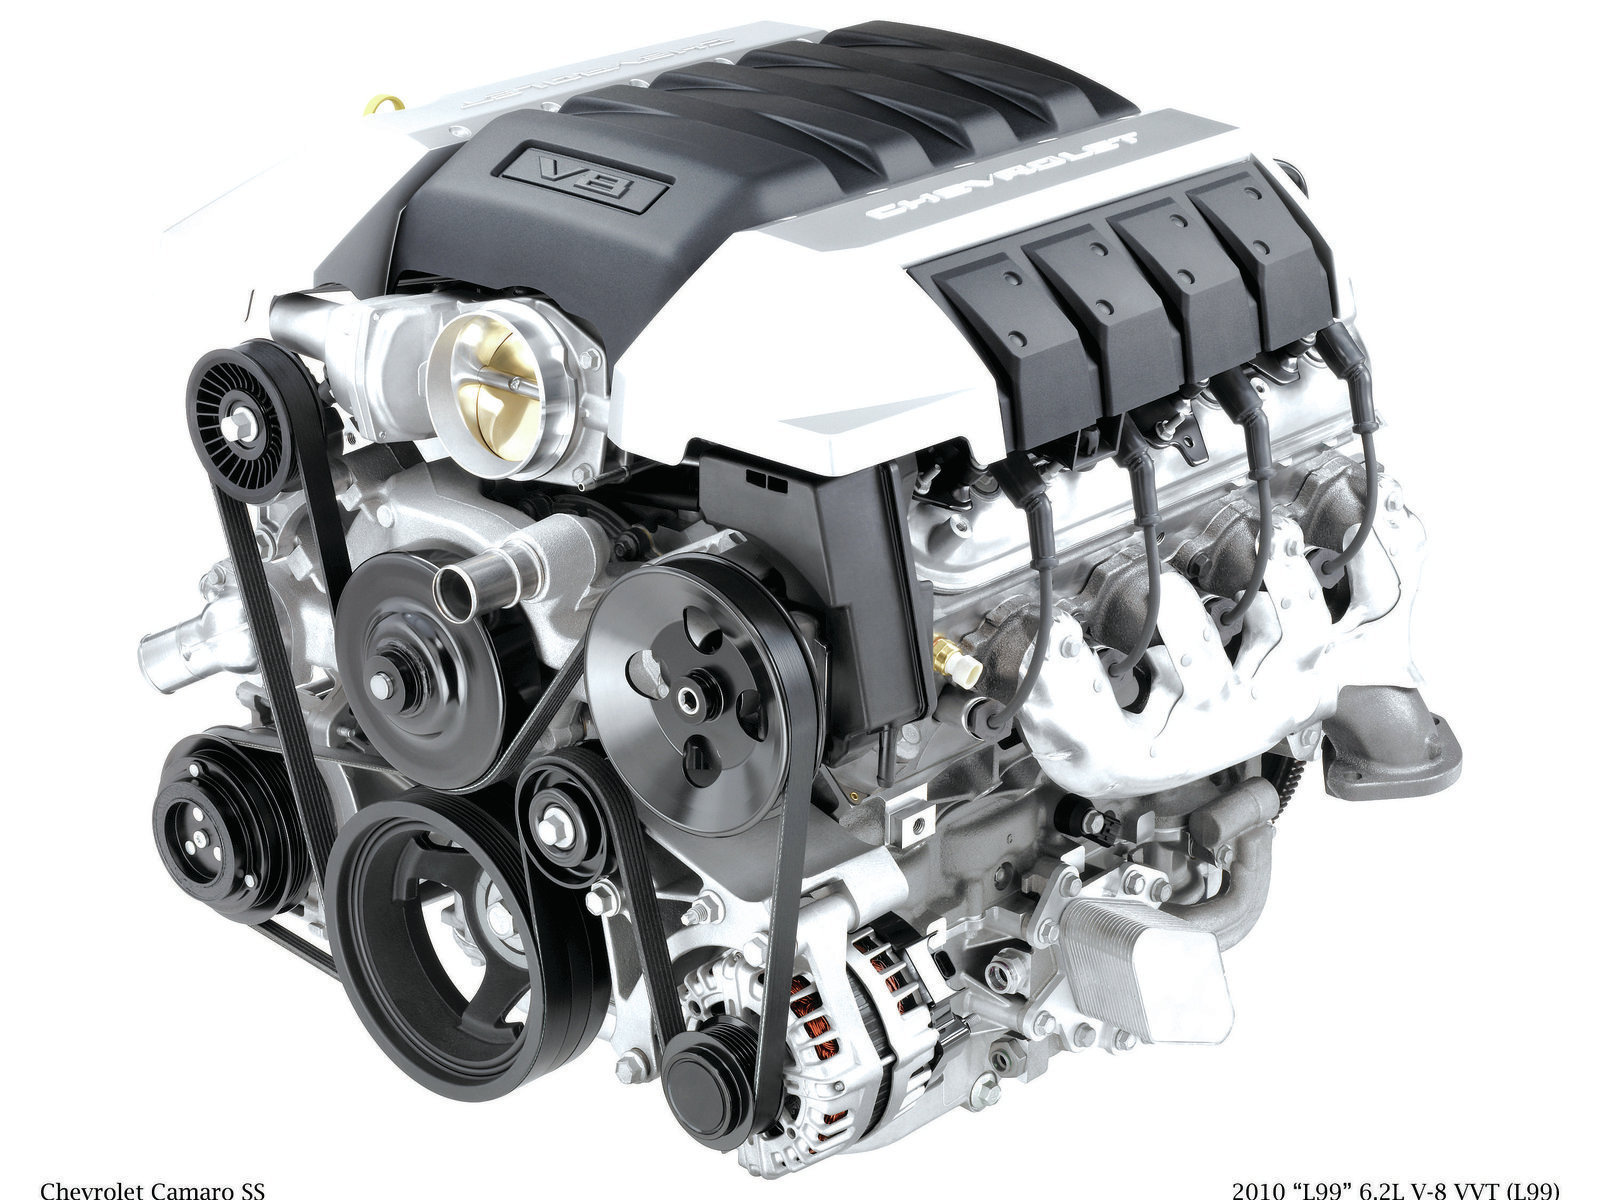 hight resolution of how to identify all those different late model gm v8 engines hot 126512 19 l76 engine diagram